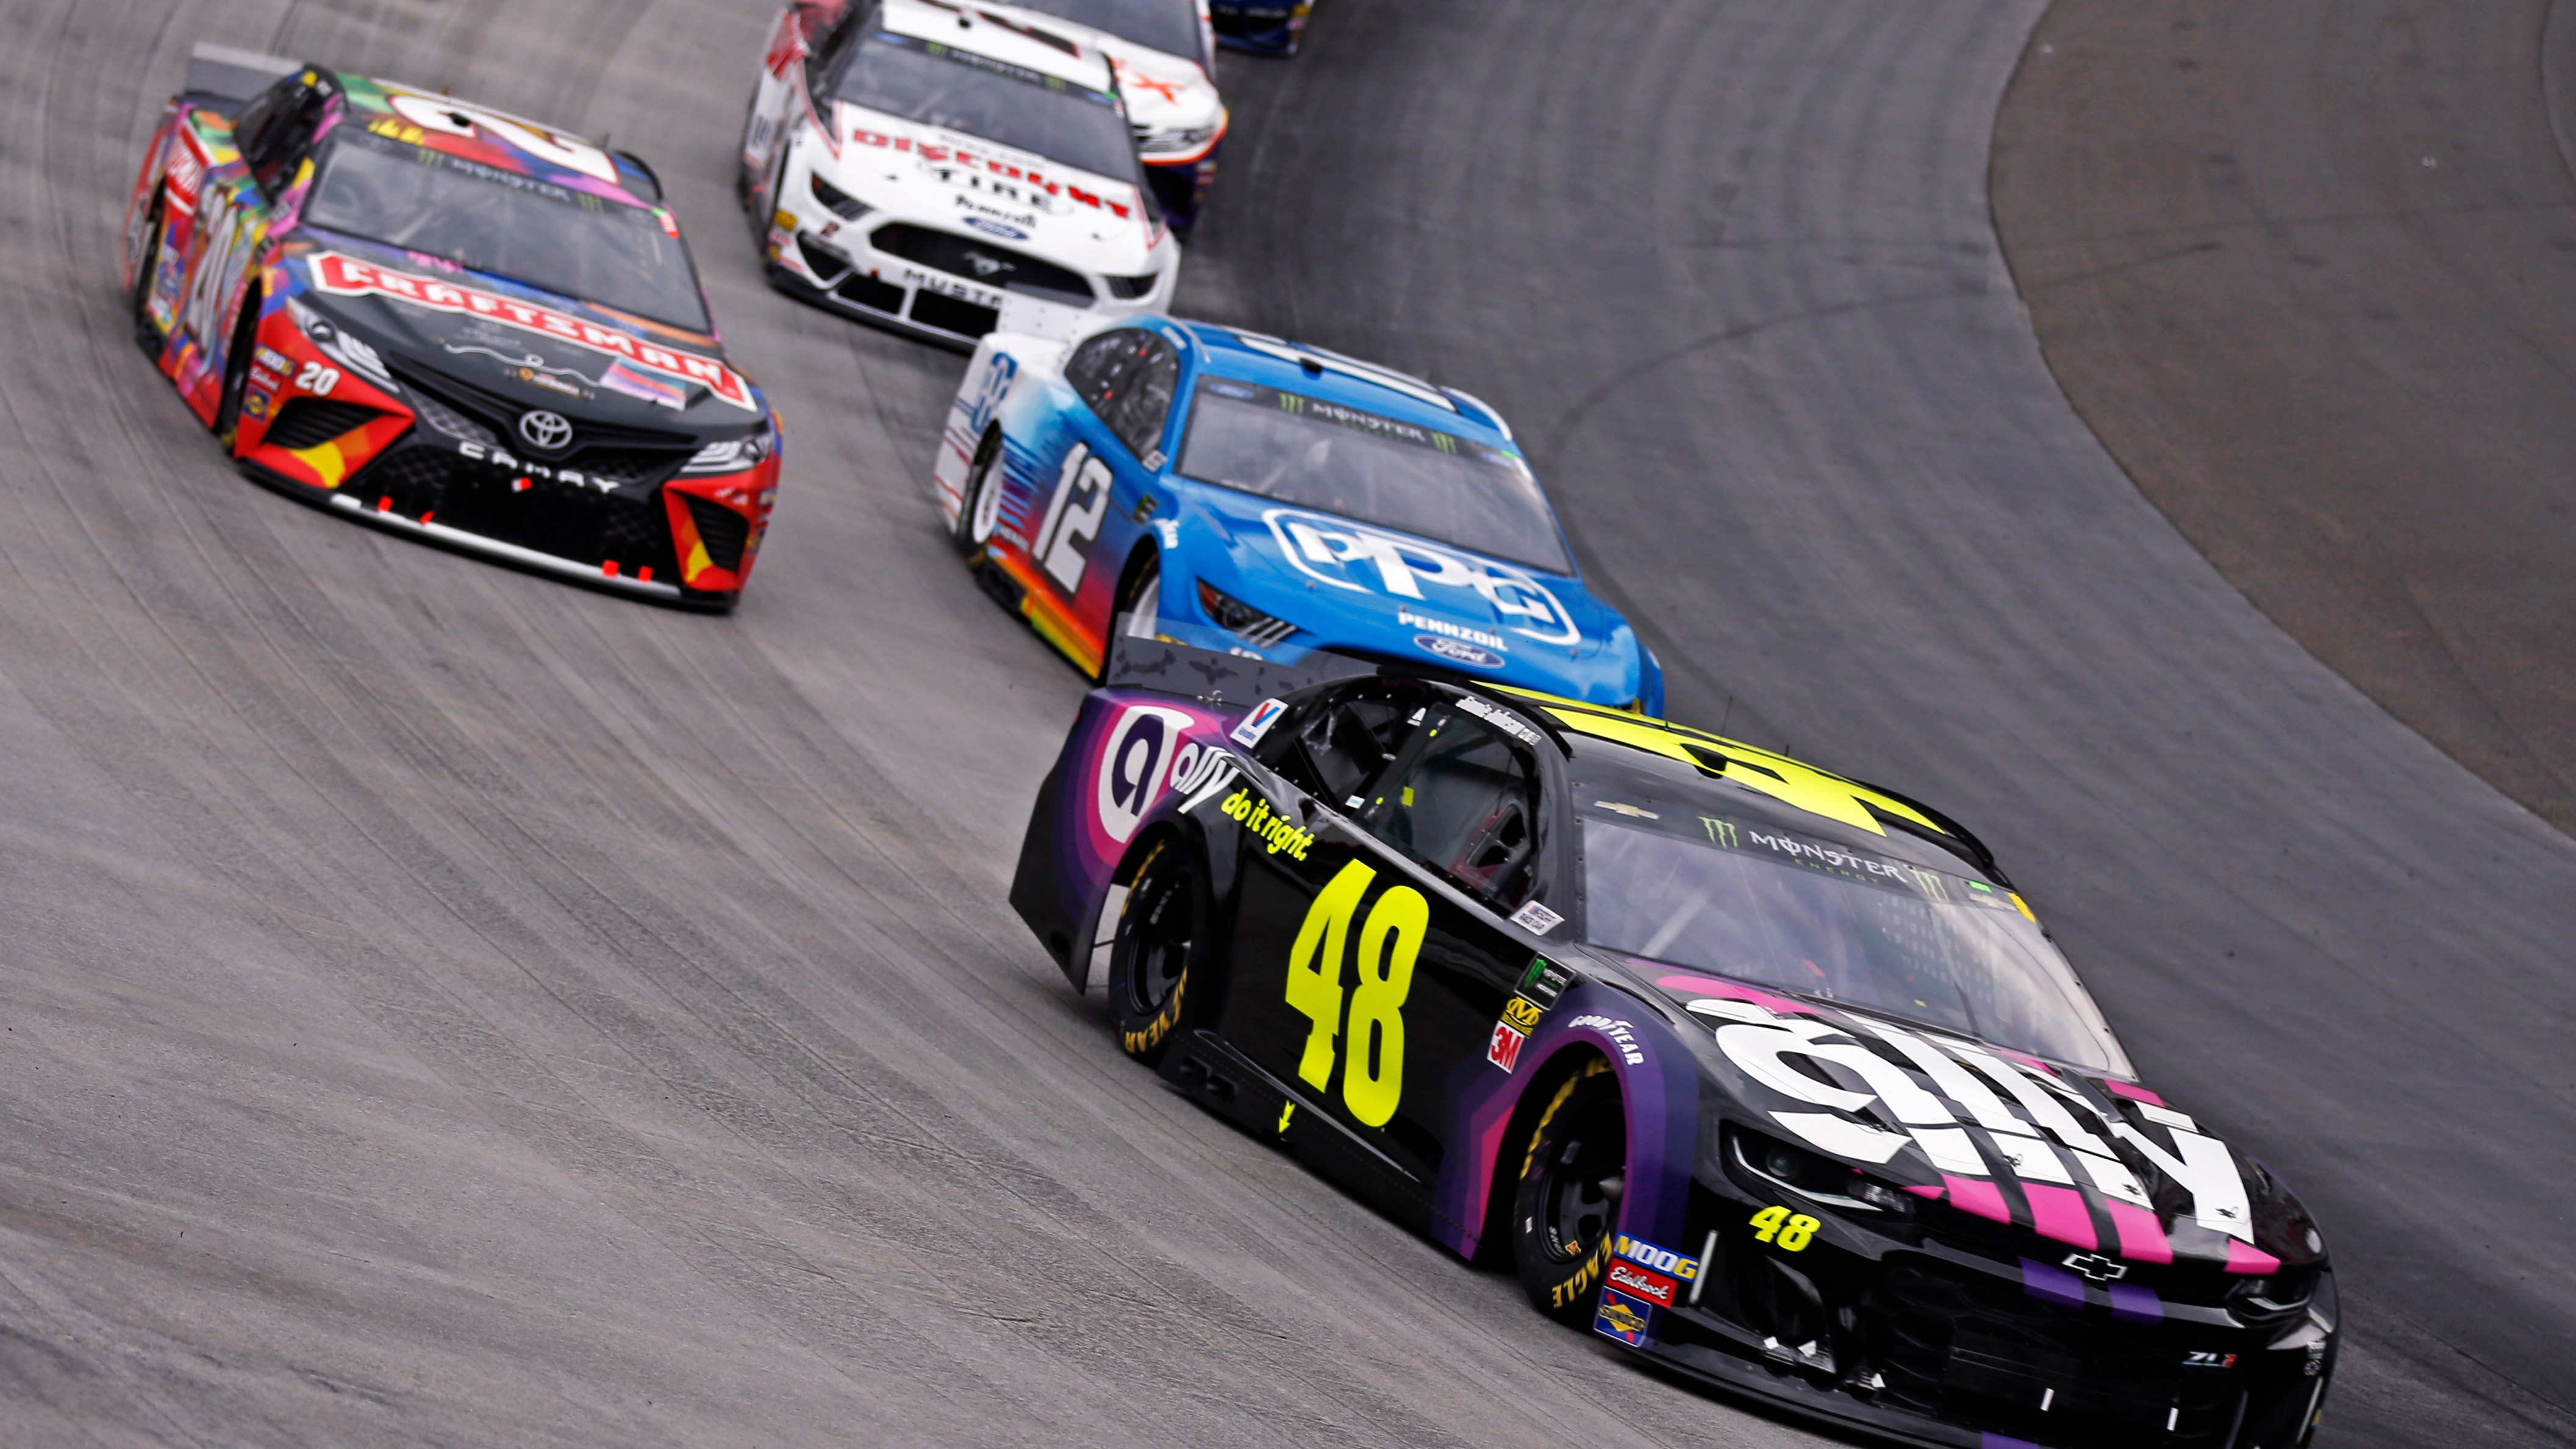 NASCAR at Indianapolis odds, key stats, bets to consider